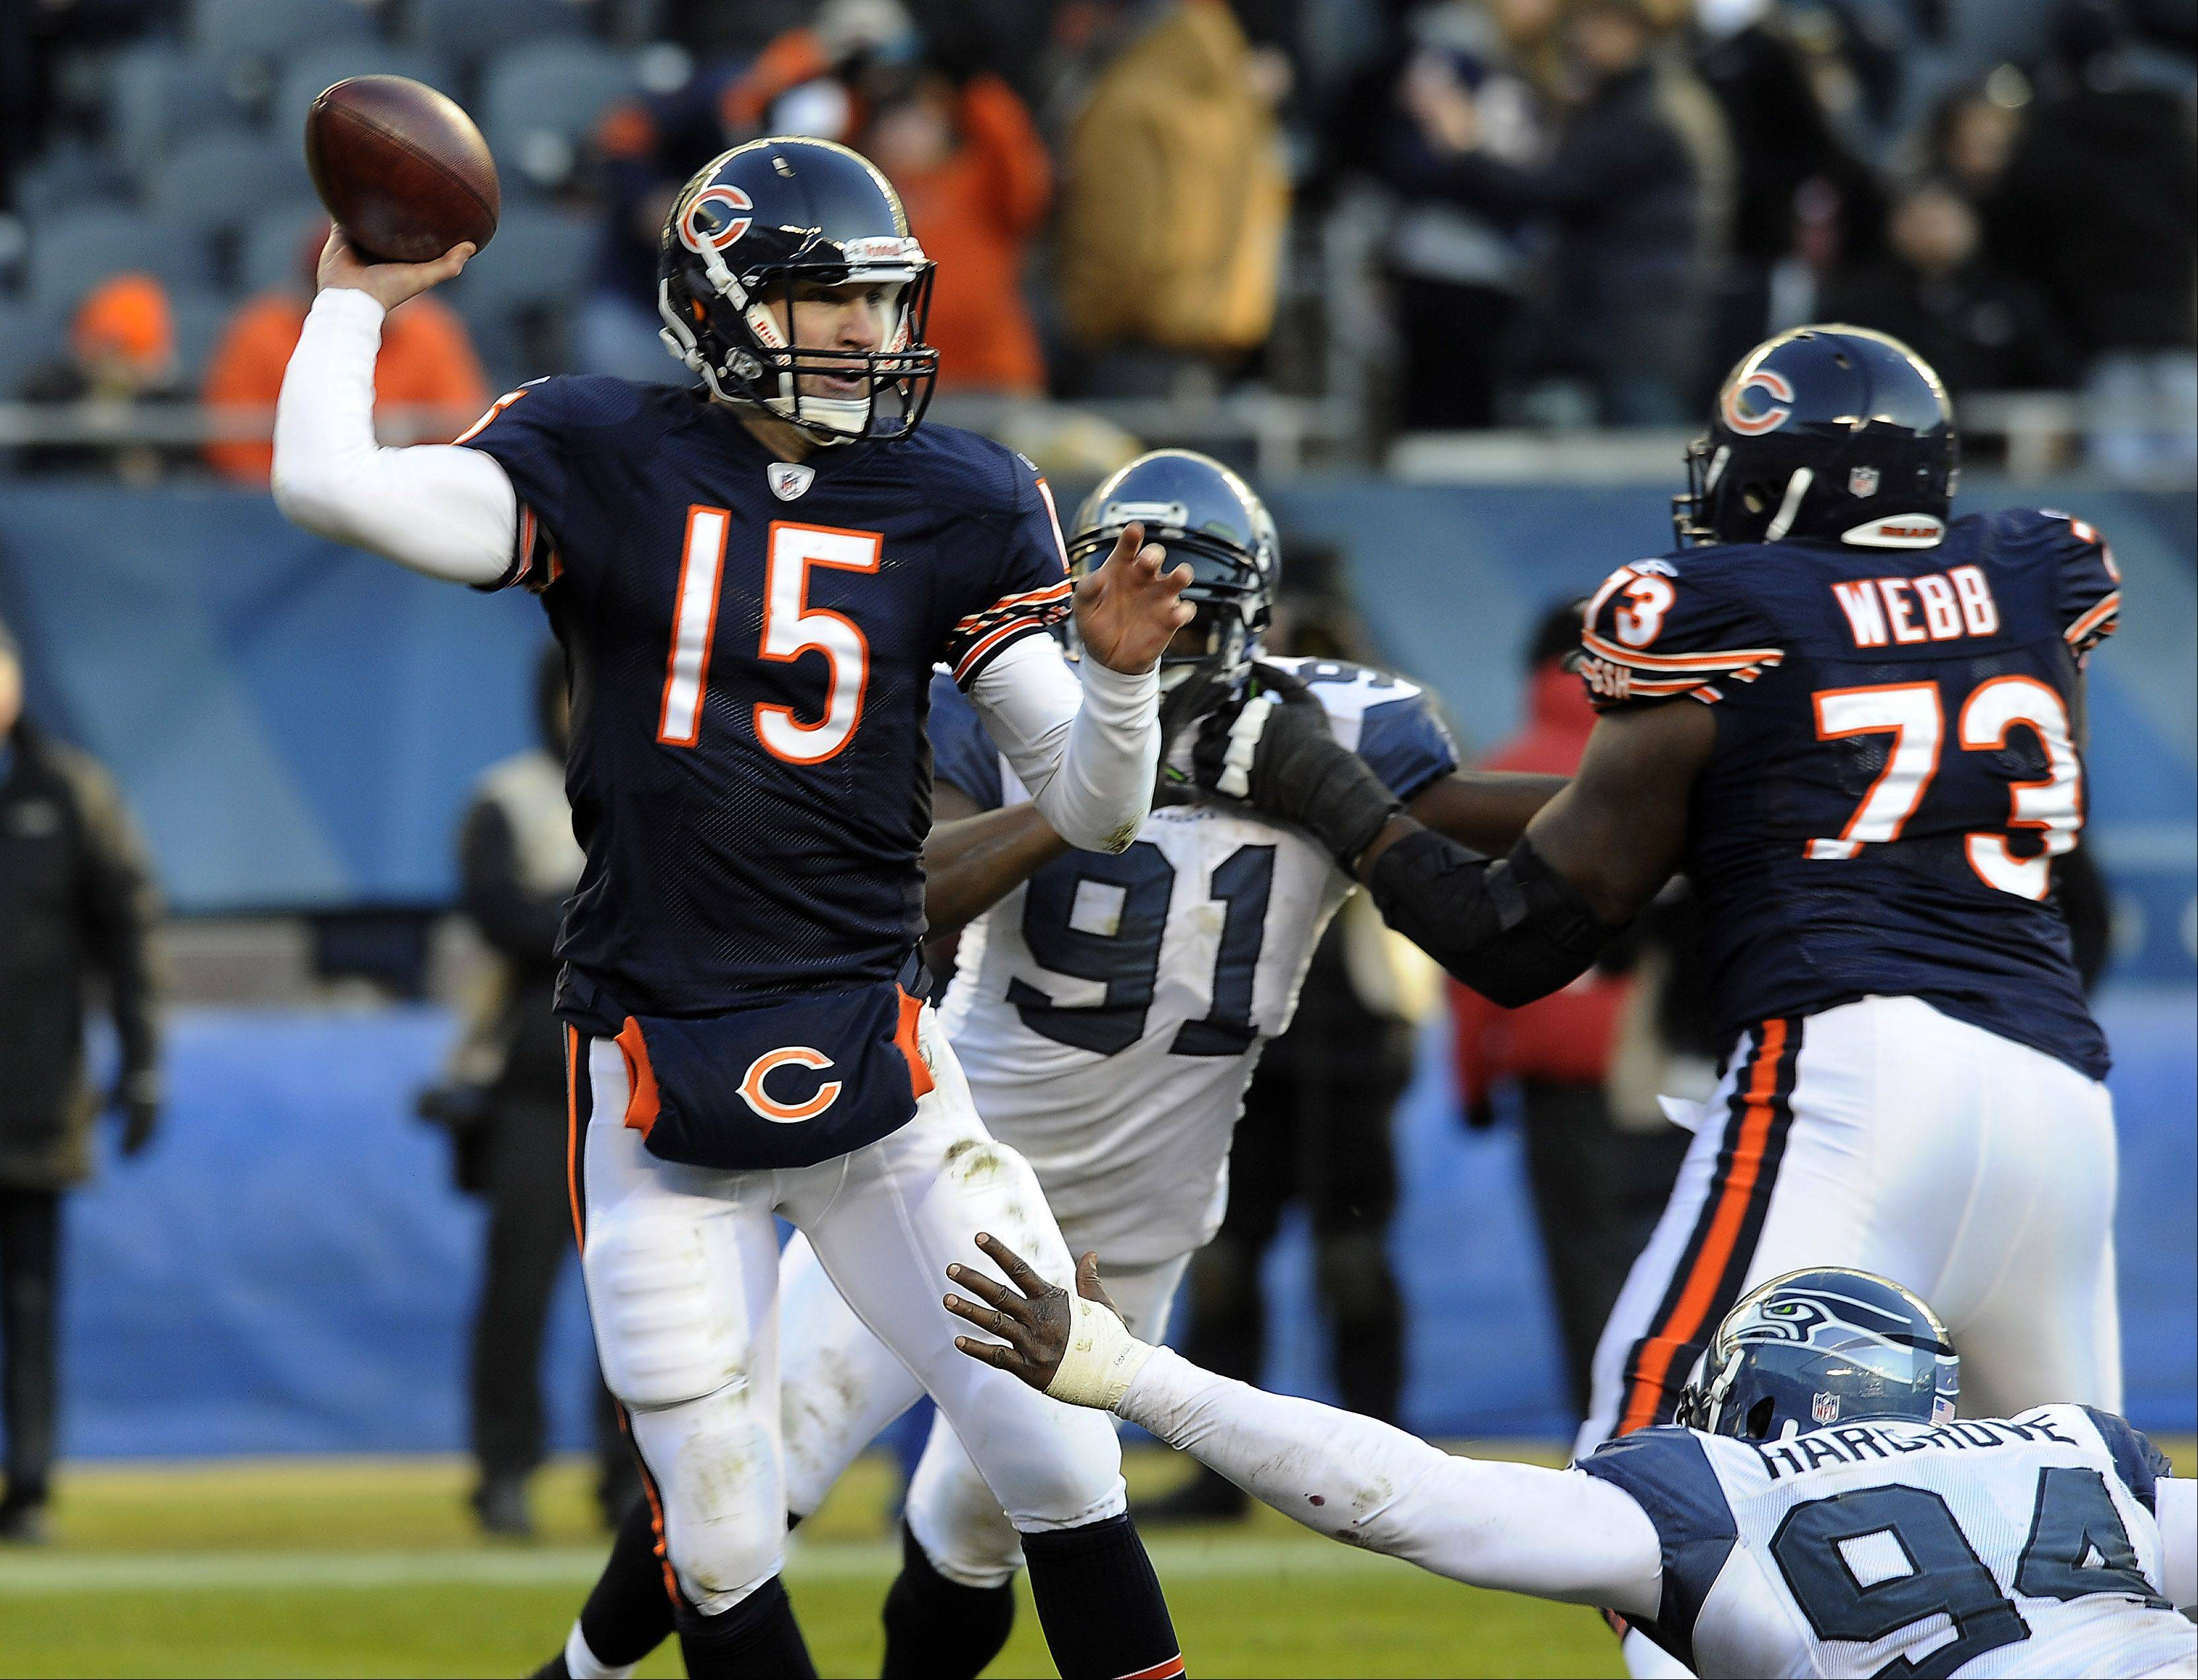 Bears quarterback Josh McCown was signed to a one-year contract Wednesday and will likely compete with Nathan Enderle for the No. 3 quarterback spot on the team.